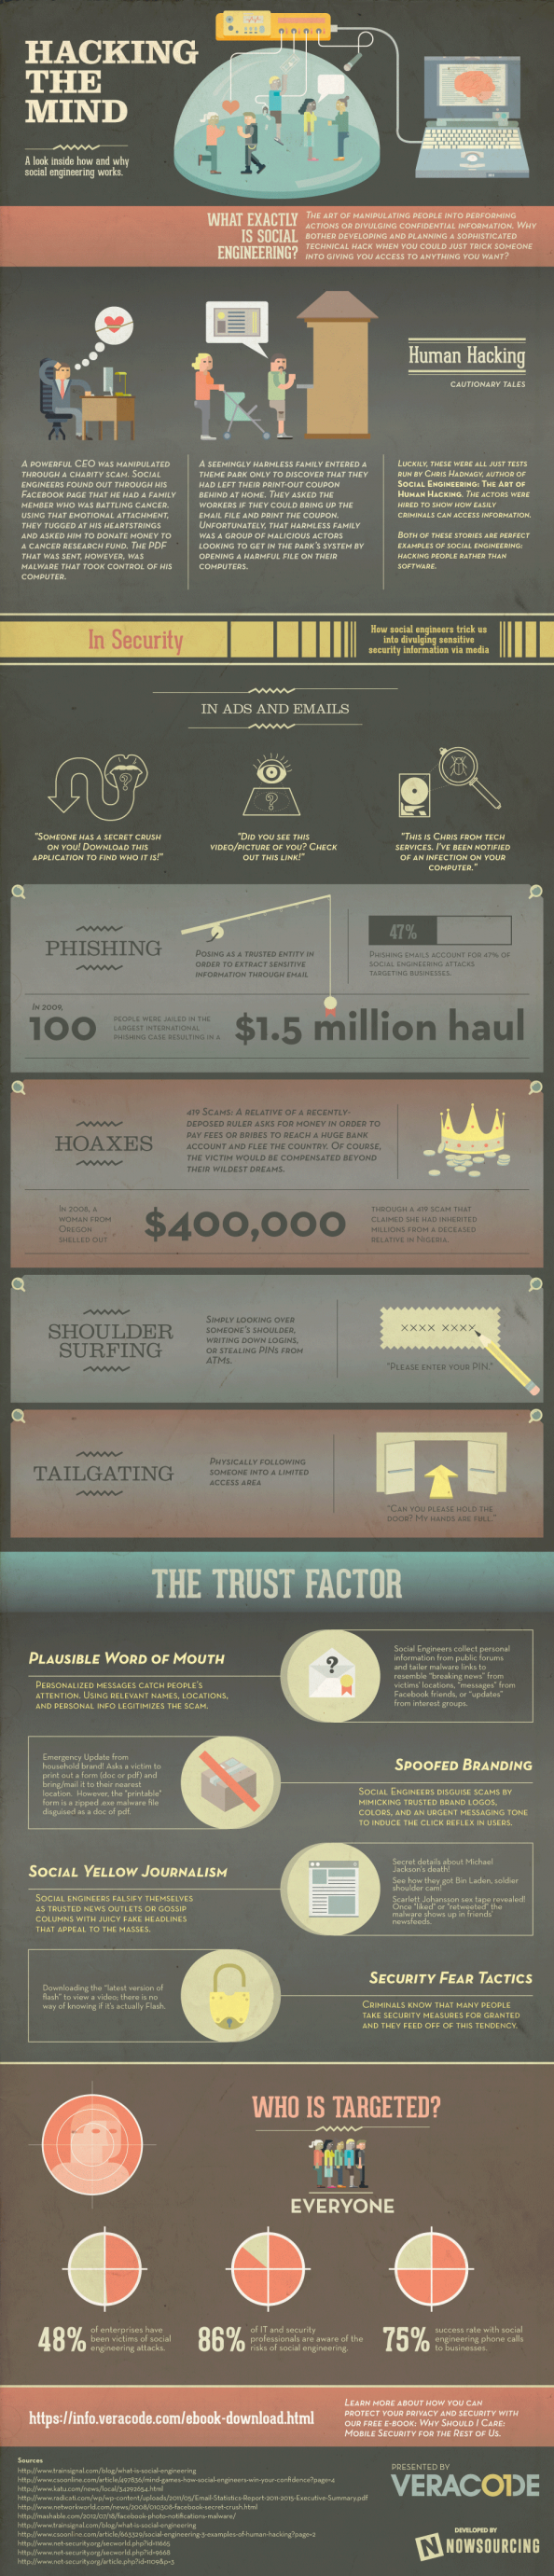 Hacking the Mind: Why Social Engineering Works Infographic